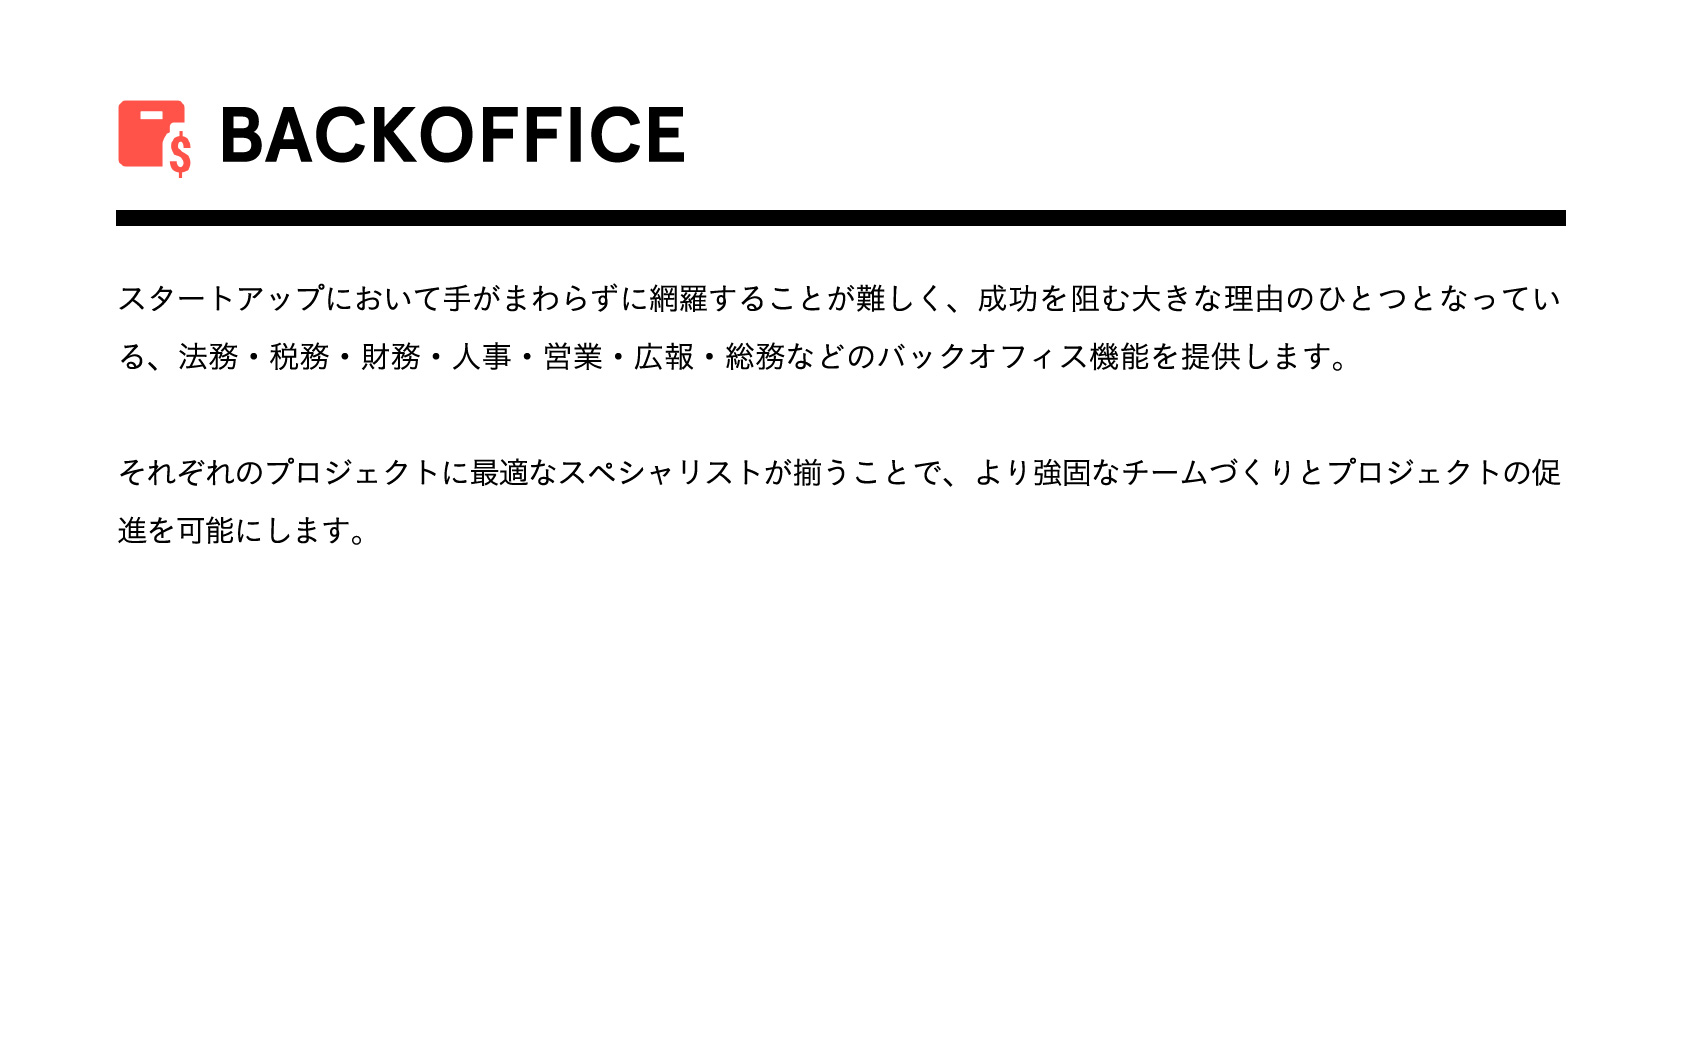 BACKOFFICE